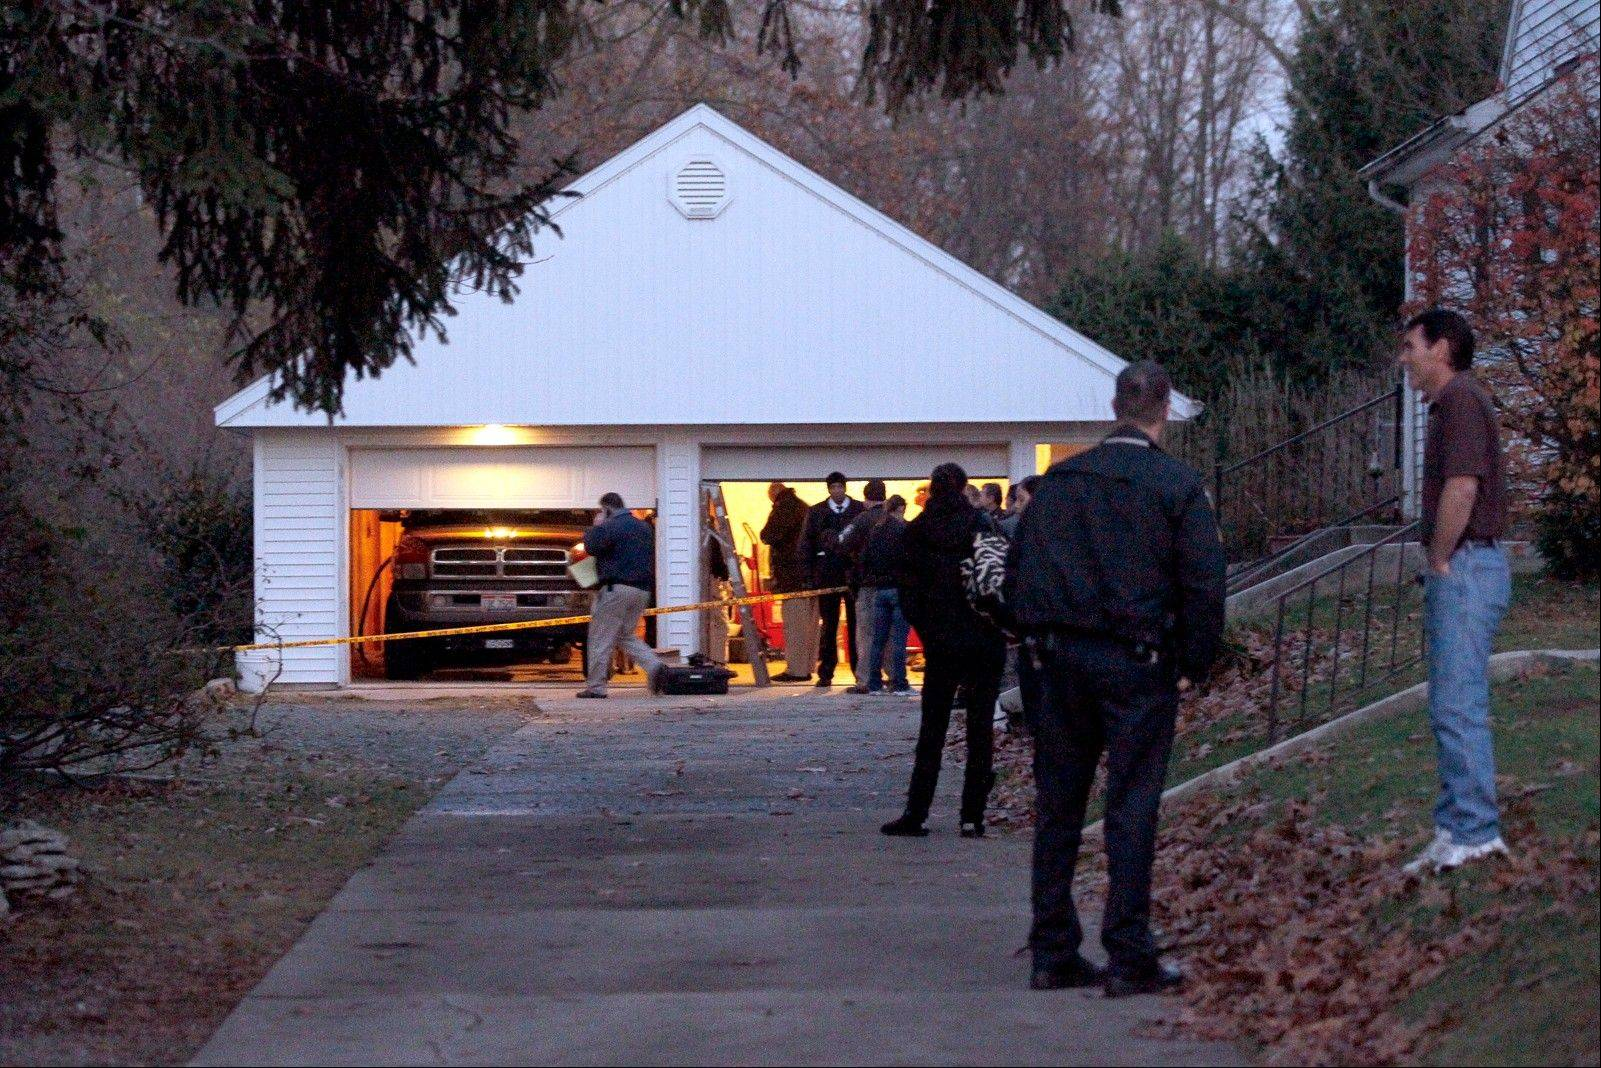 Authorities respond to a report of carbon monoxide poisoning in Toledo, Ohio, Monday. The bodies of three children and two adults were found inside the garage.